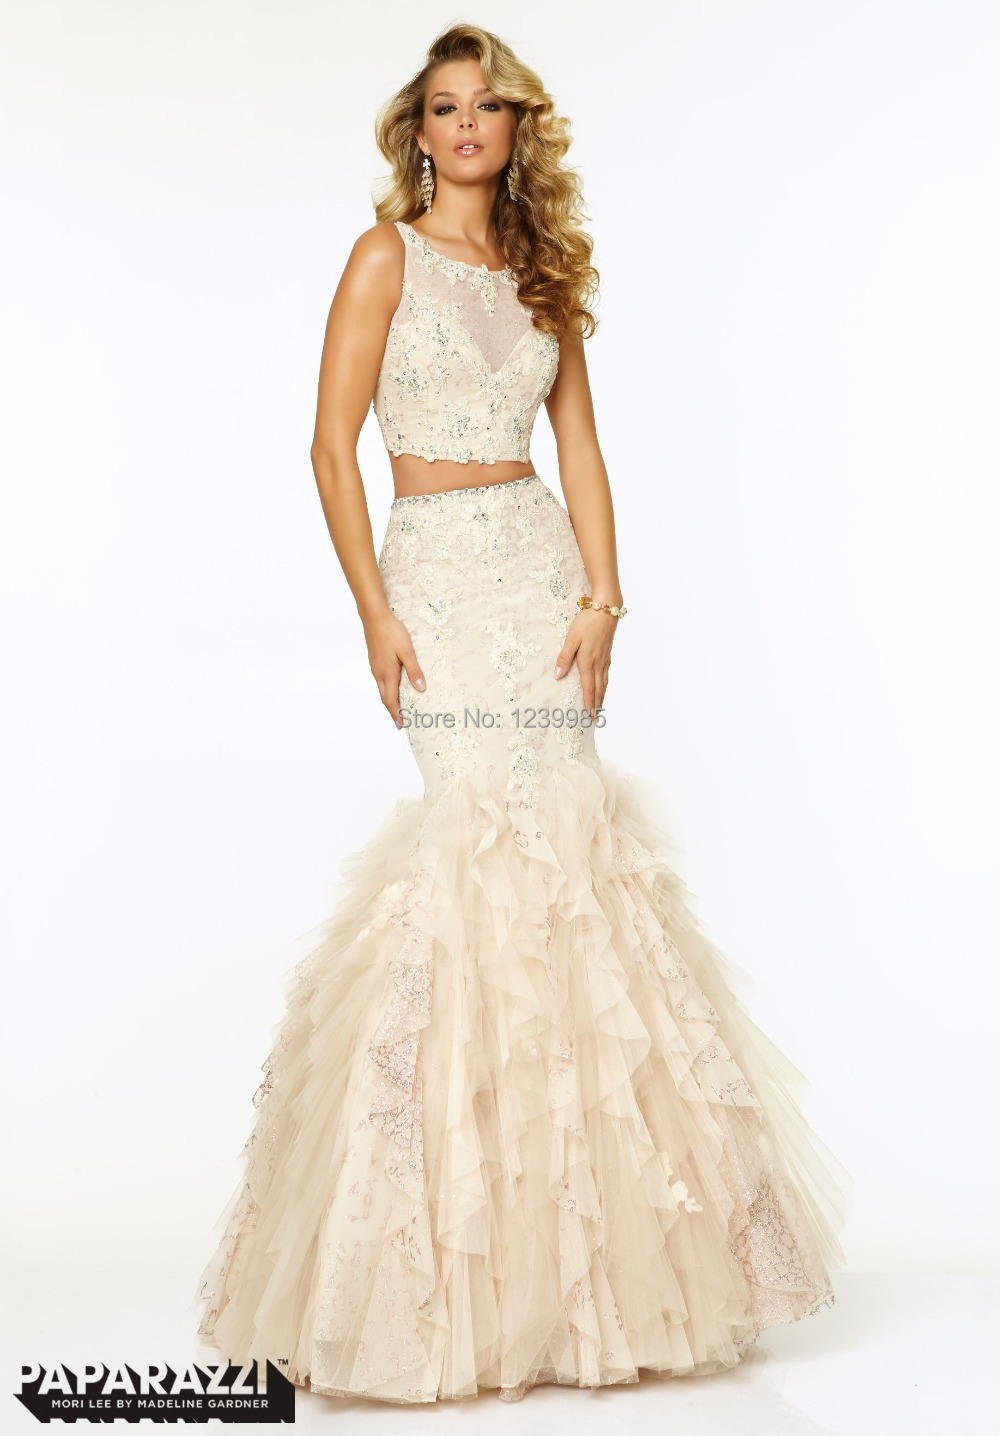 423f6d7be0 Where To Buy Homecoming Dresses In Appleton Wi - Gomes Weine AG